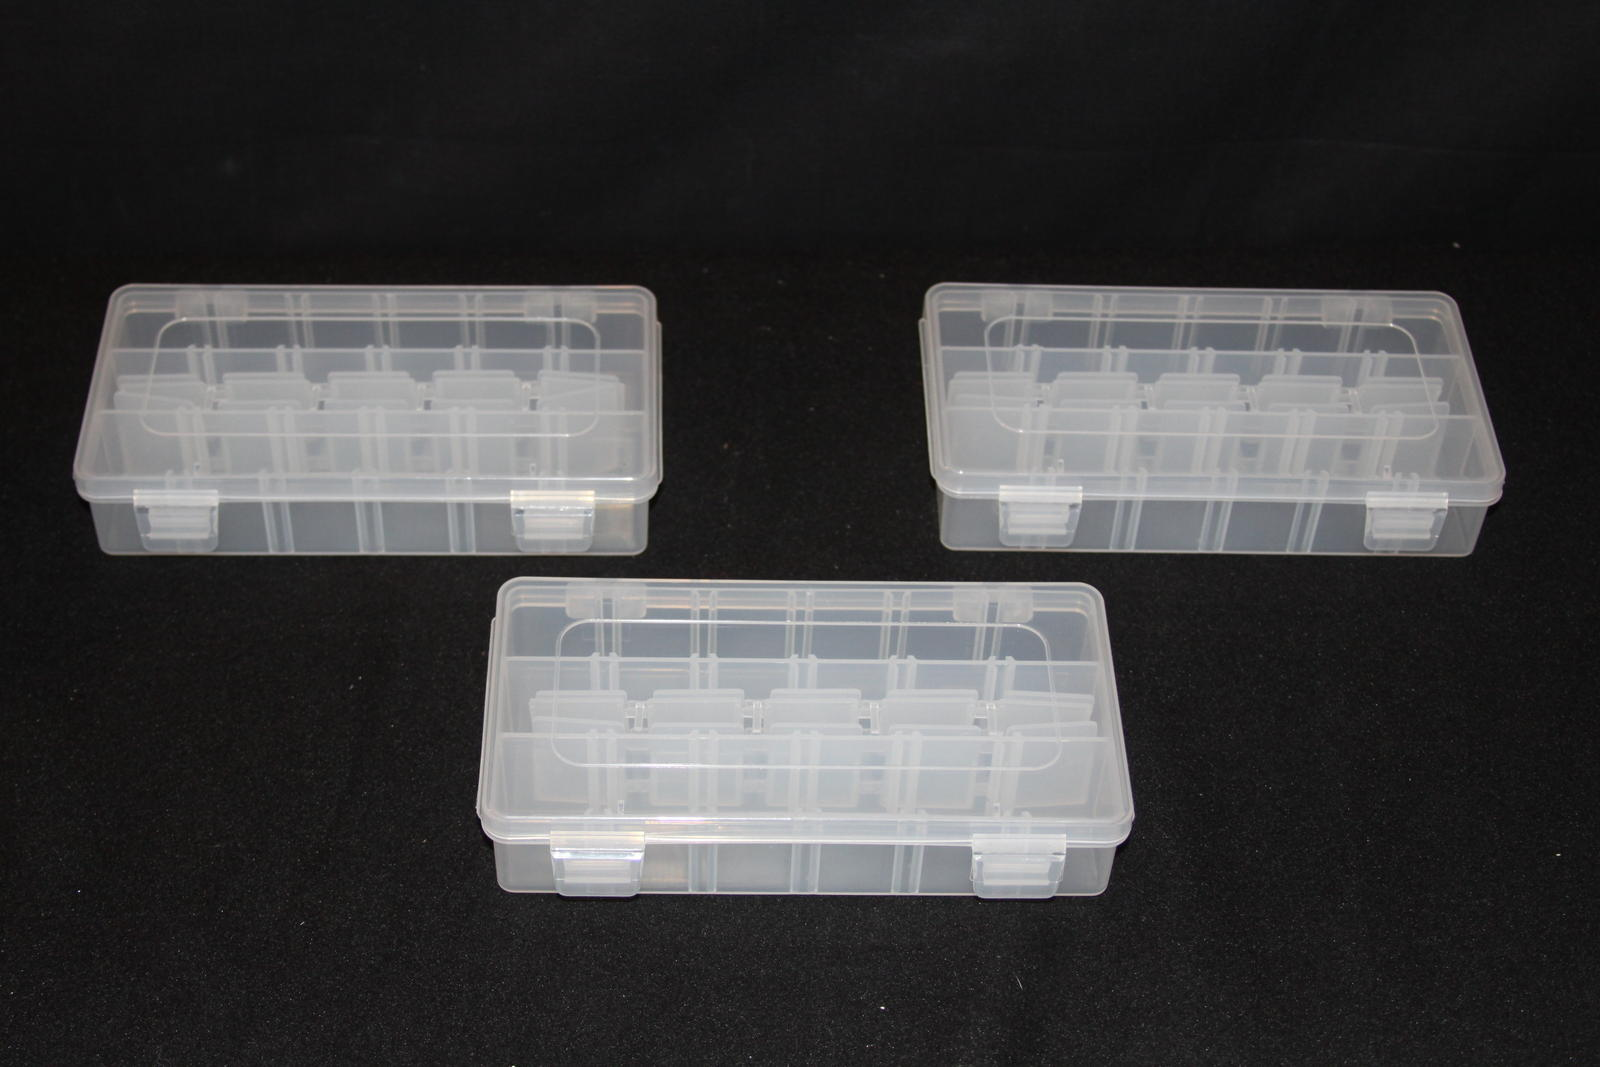 Three sturdy containers - one for each of the three sizes supplied.